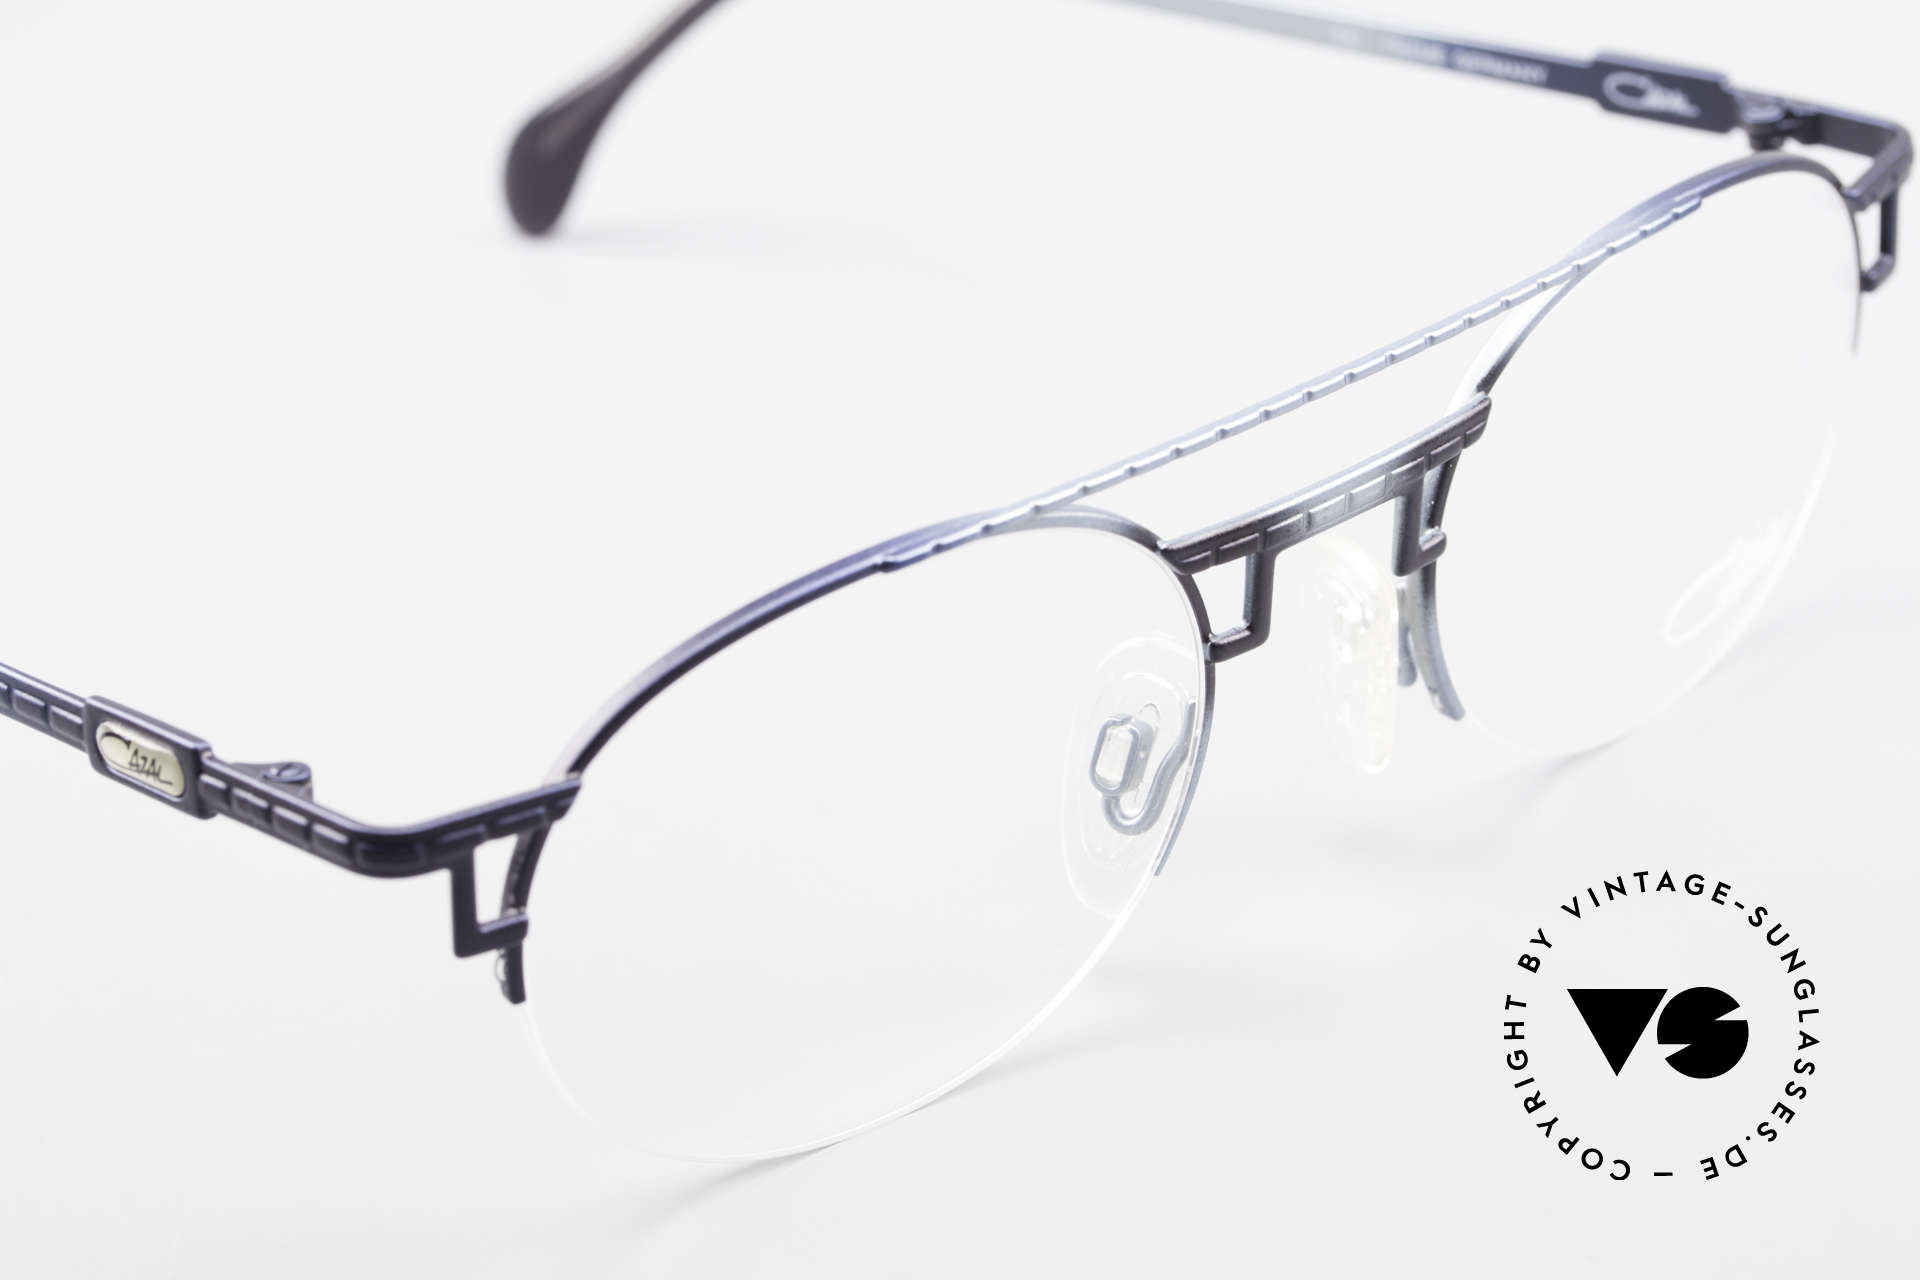 Cazal 764 True Vintage 90's Cazal Specs, new old stock (like all our vintage CAZAL specs), Made for Men